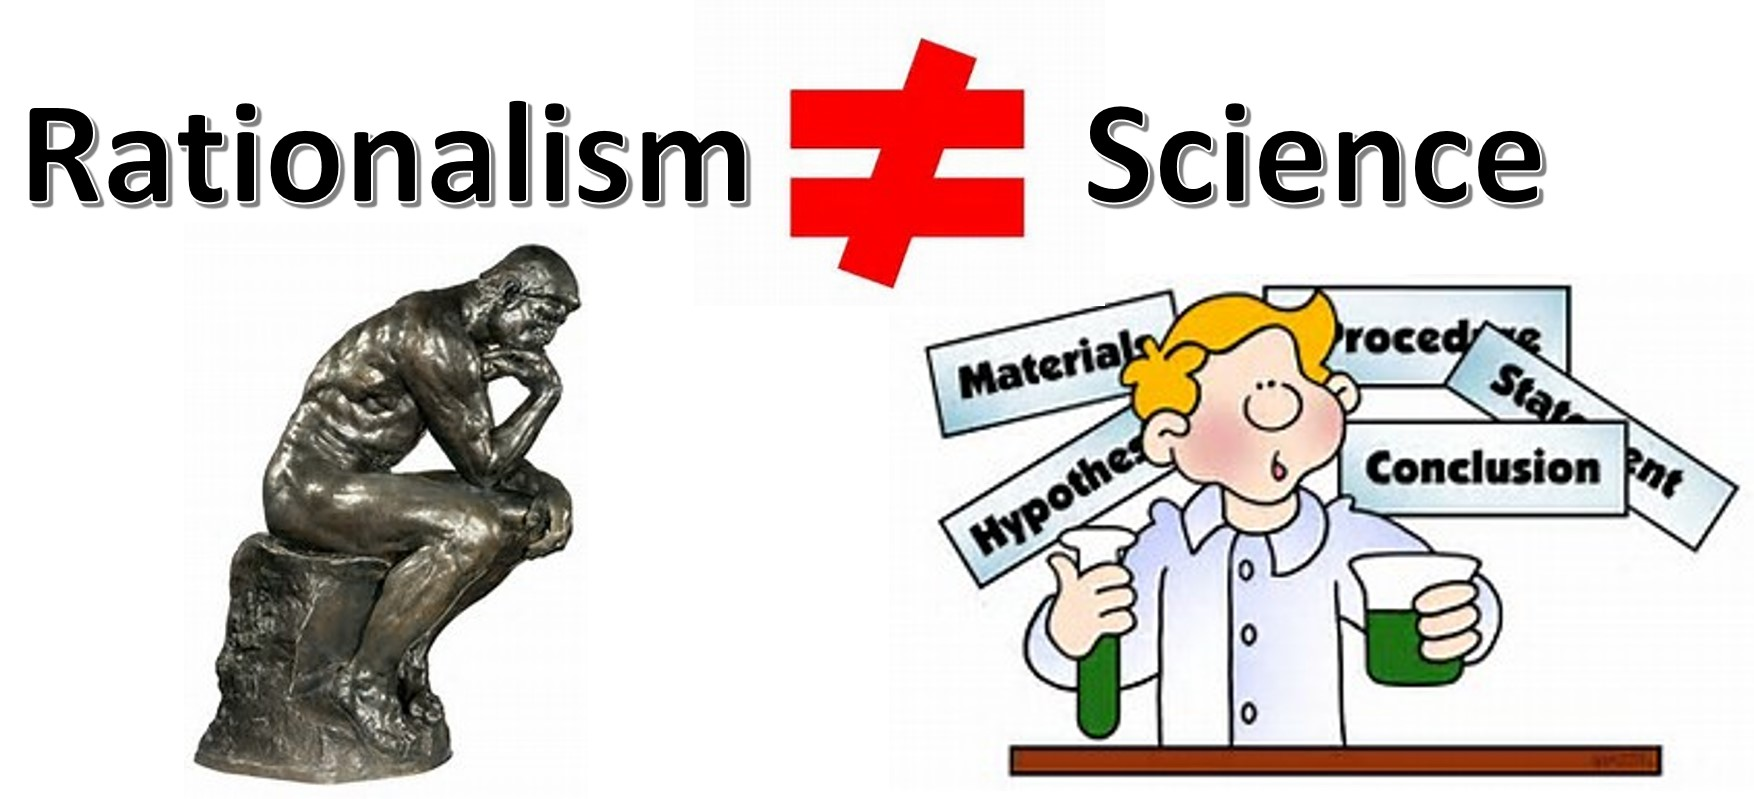 rationalism does not equal science